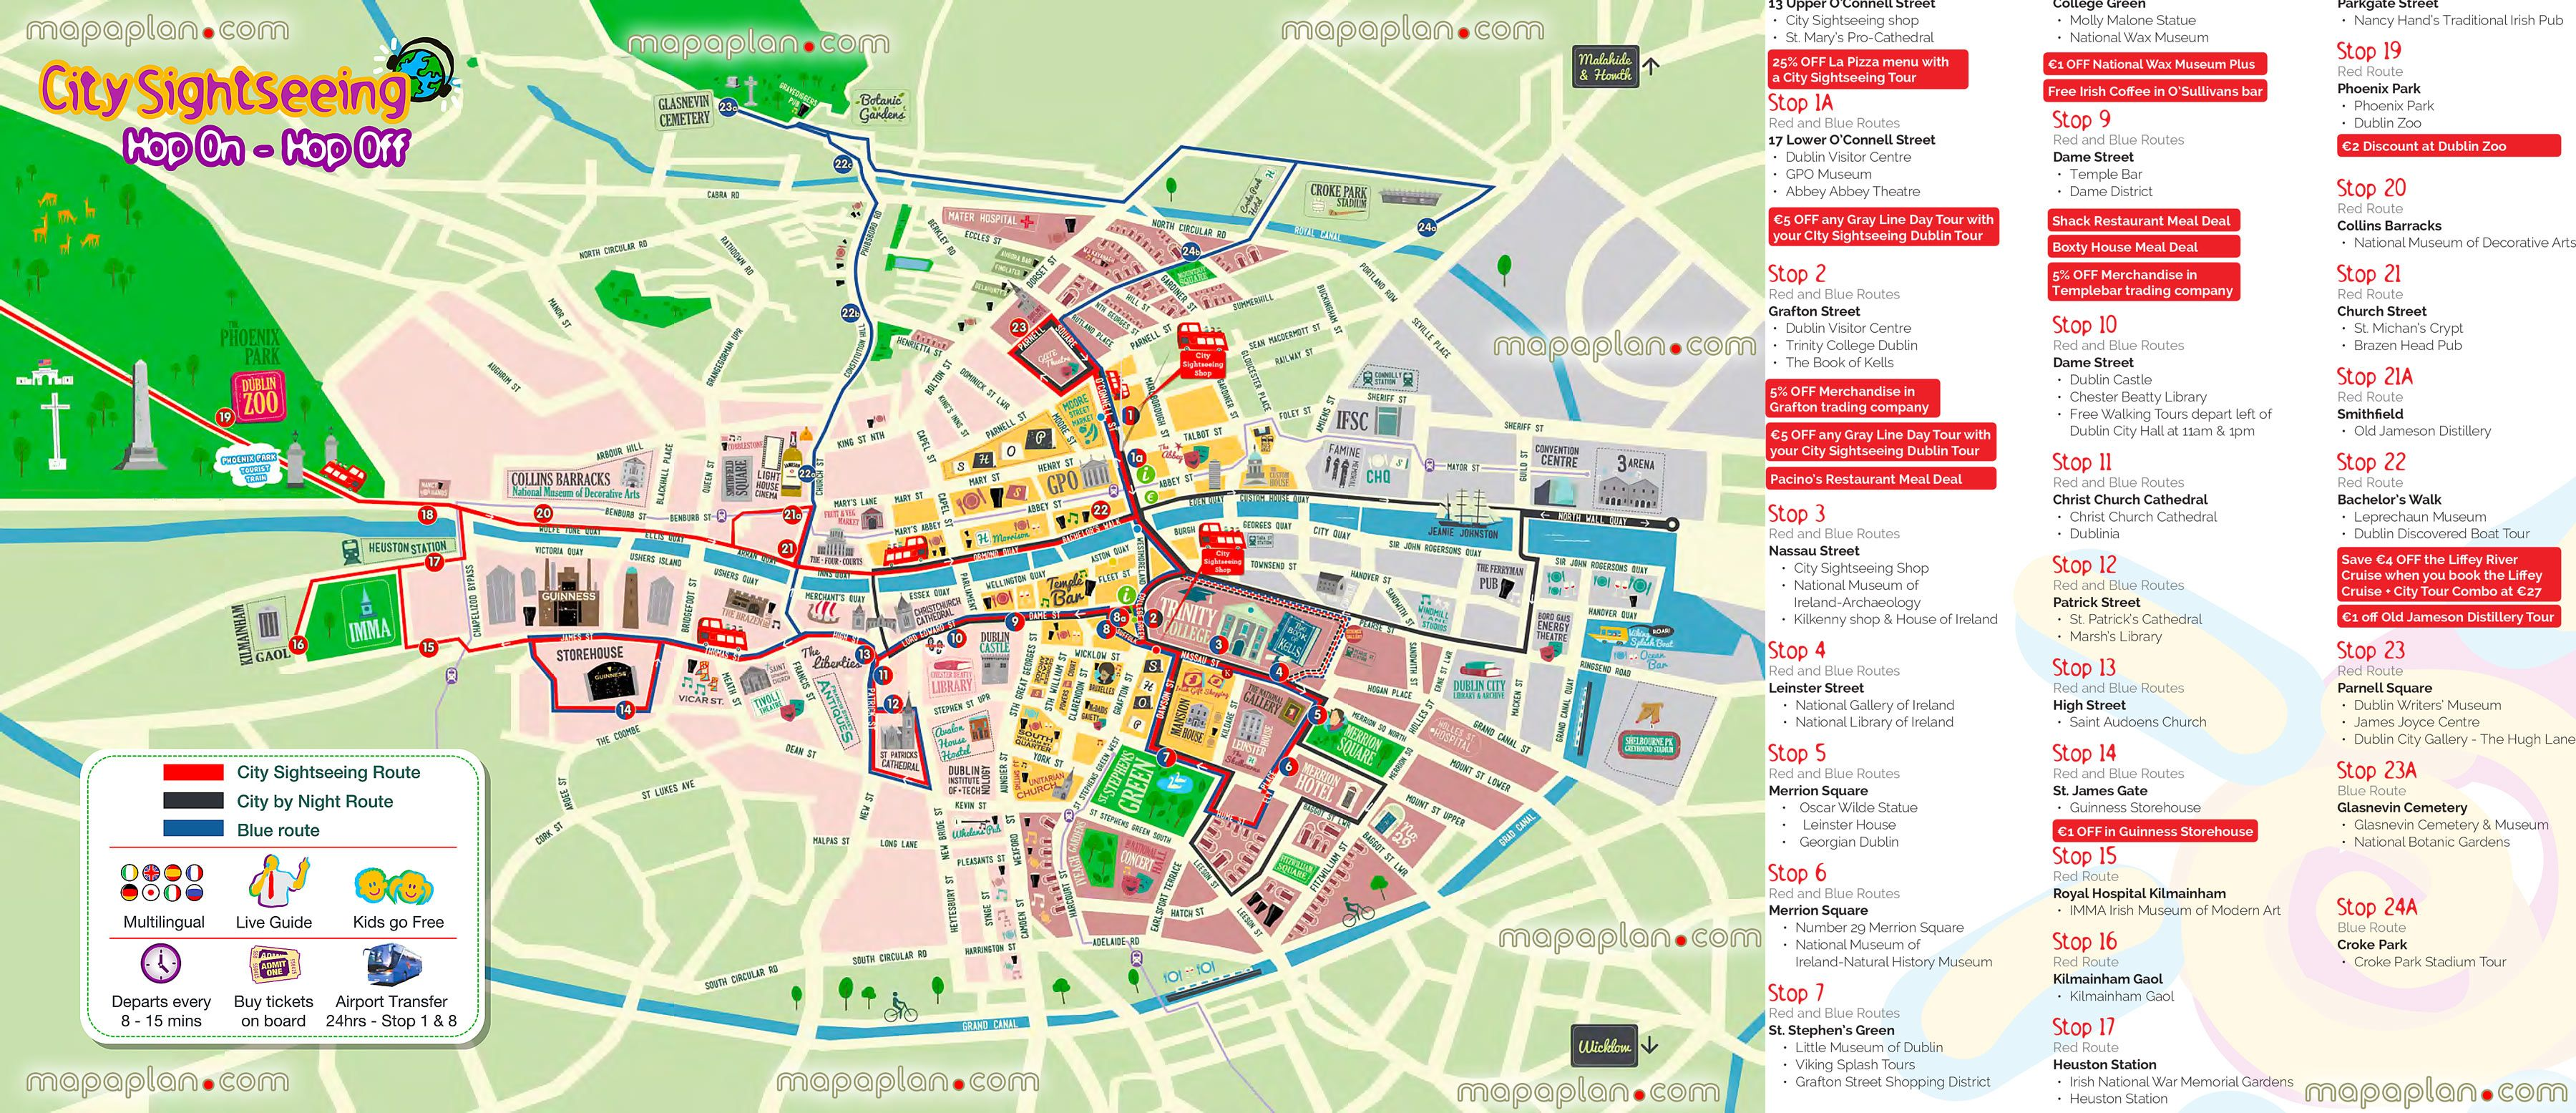 Hop Hop Off Bus Dublin City Sightseeing Tour Double Decker Open Top Red  Couch Visitors Plan